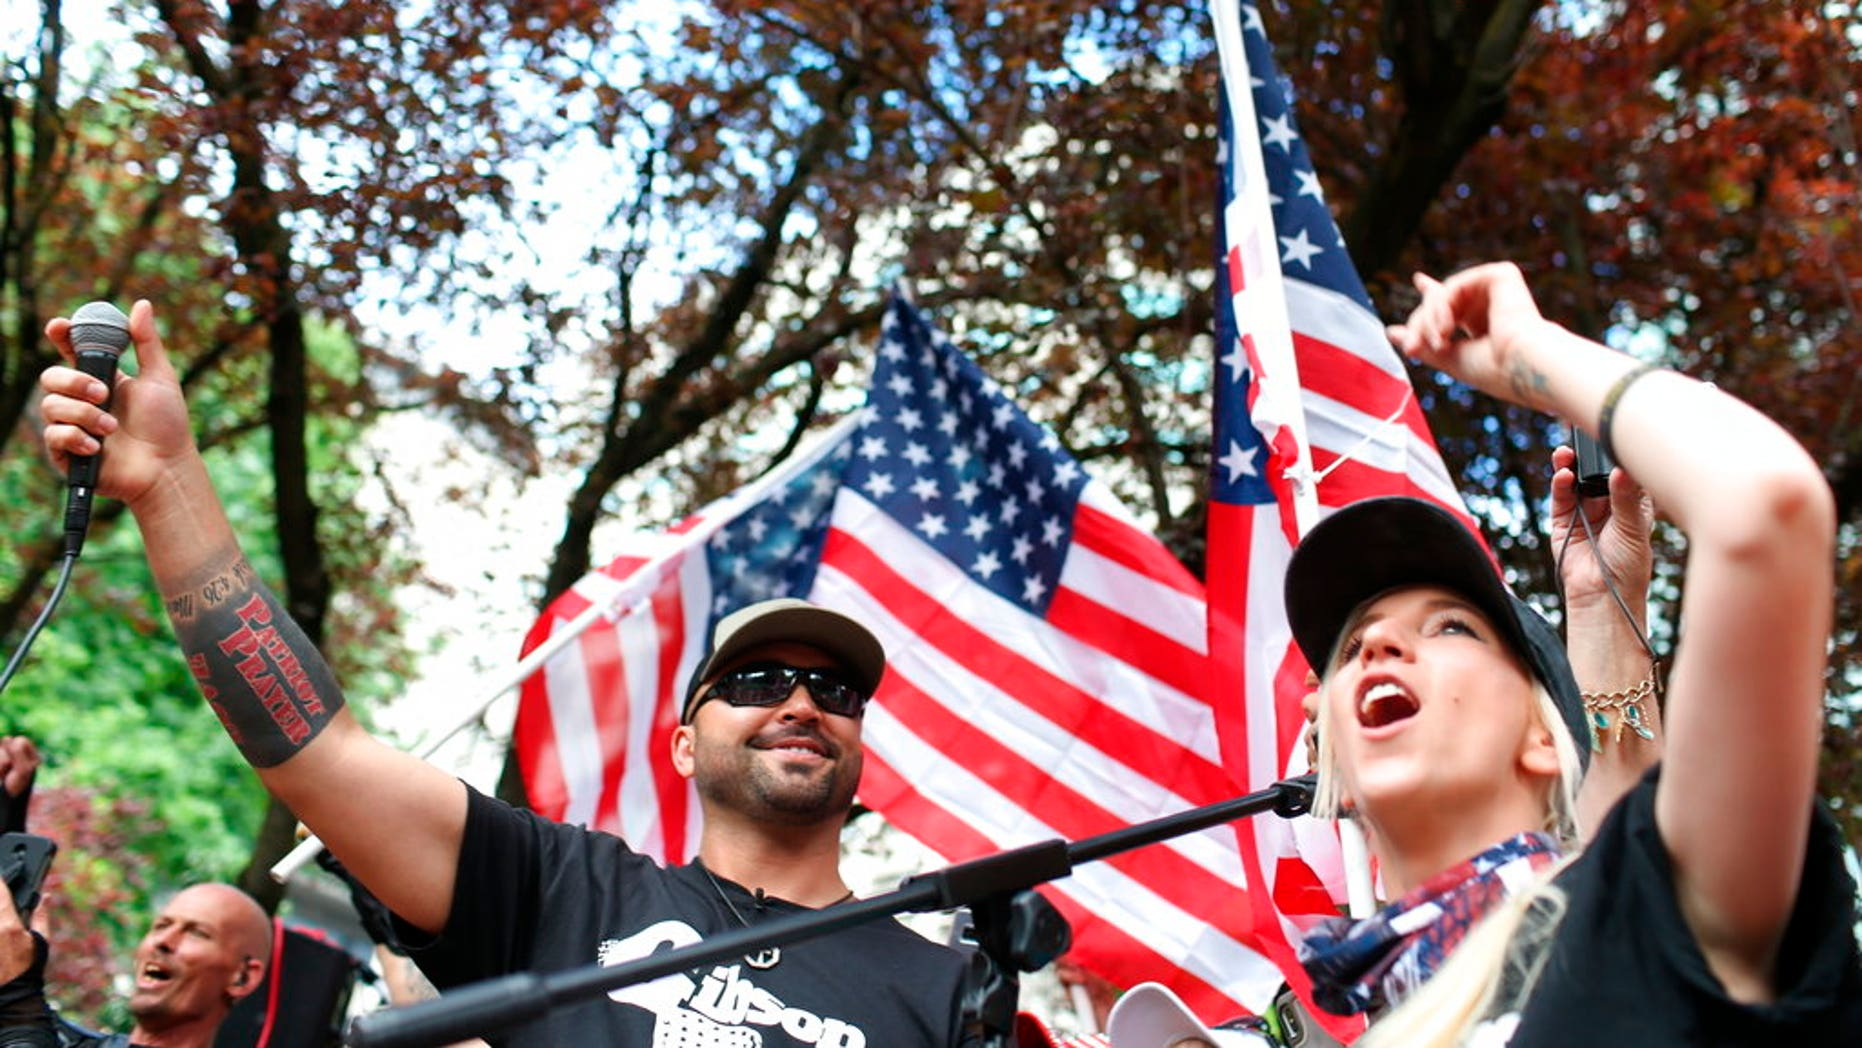 FILE--In this June 30, 2018, file photo, Joey Gibson, left, leader of Patriot Prayer, heads the group's rally in Portland, Ore. Portland is bracing for what could be another round of violent clashes Saturday, Aug. 4, 2018, between a right-wing group holding a rally here and self-described anti-fascist counter-protesters who have pledged to keep Patriot Prayer and other affiliated groups out of this ultra-liberal city. (Mark Graves/The Oregonian via AP, file)